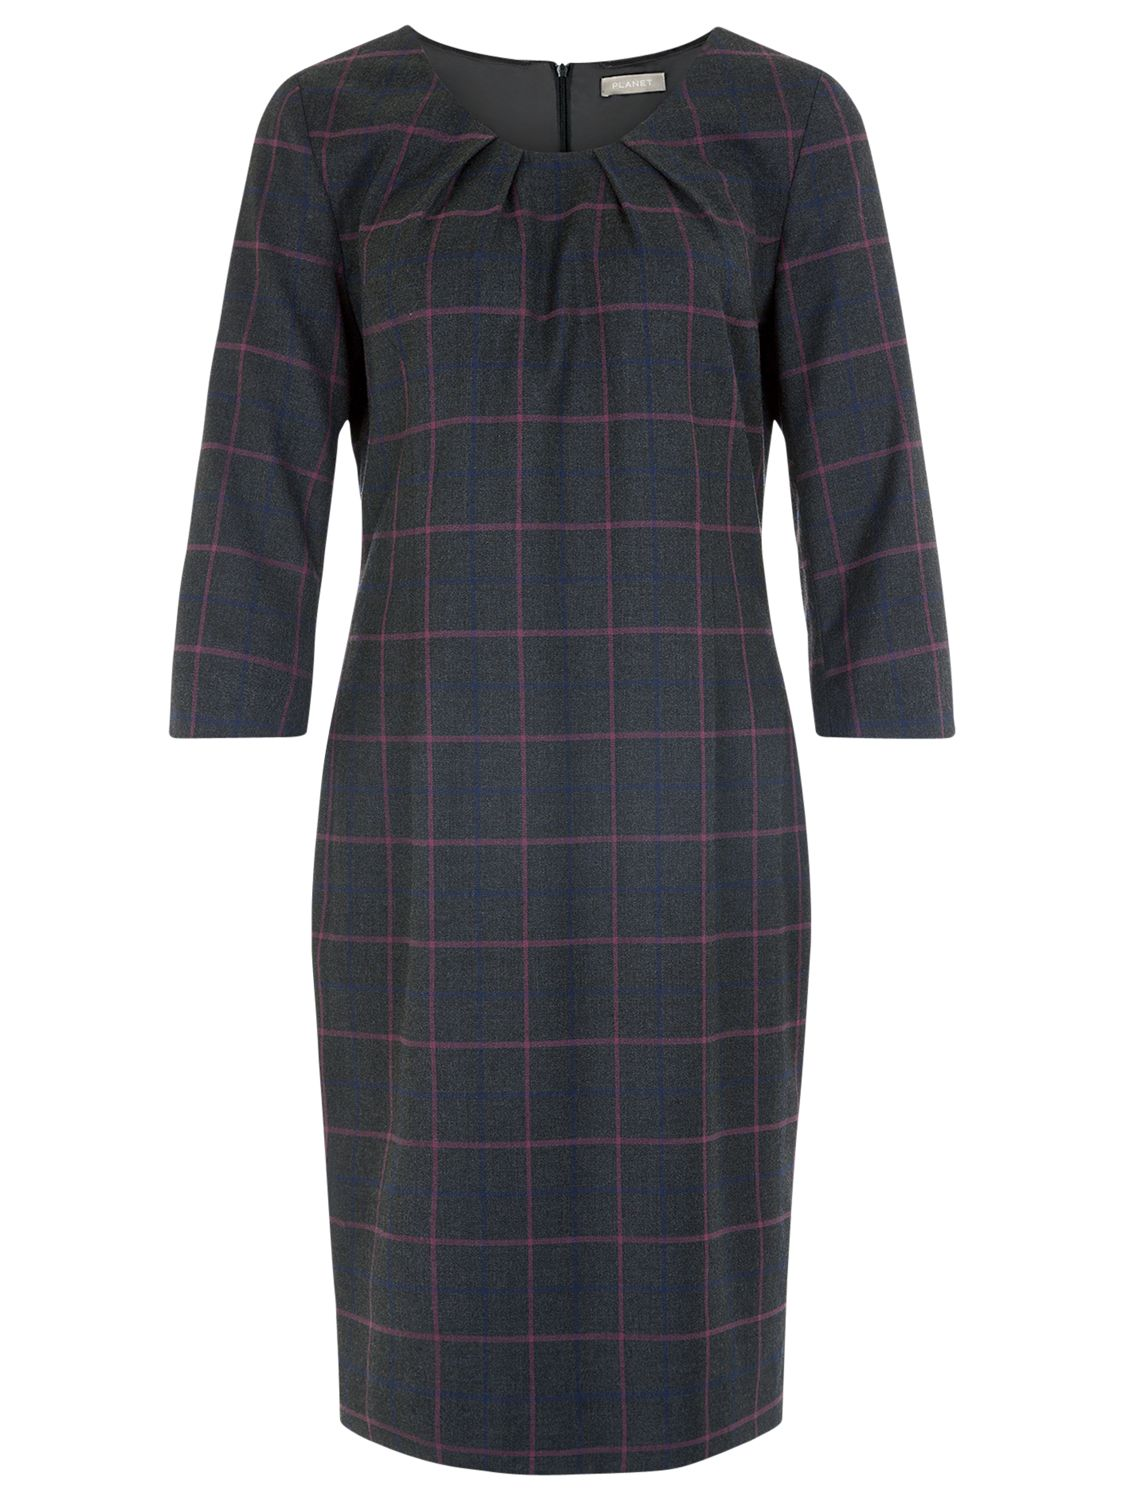 planet check shift dress charcoal, planet, check, shift, dress, charcoal, 14|16|18|12, clearance, womenswear offers, womens dresses offers, women, plus size, inactive womenswear, new reductions, womens dresses, special offers, workwear offers, 1709605